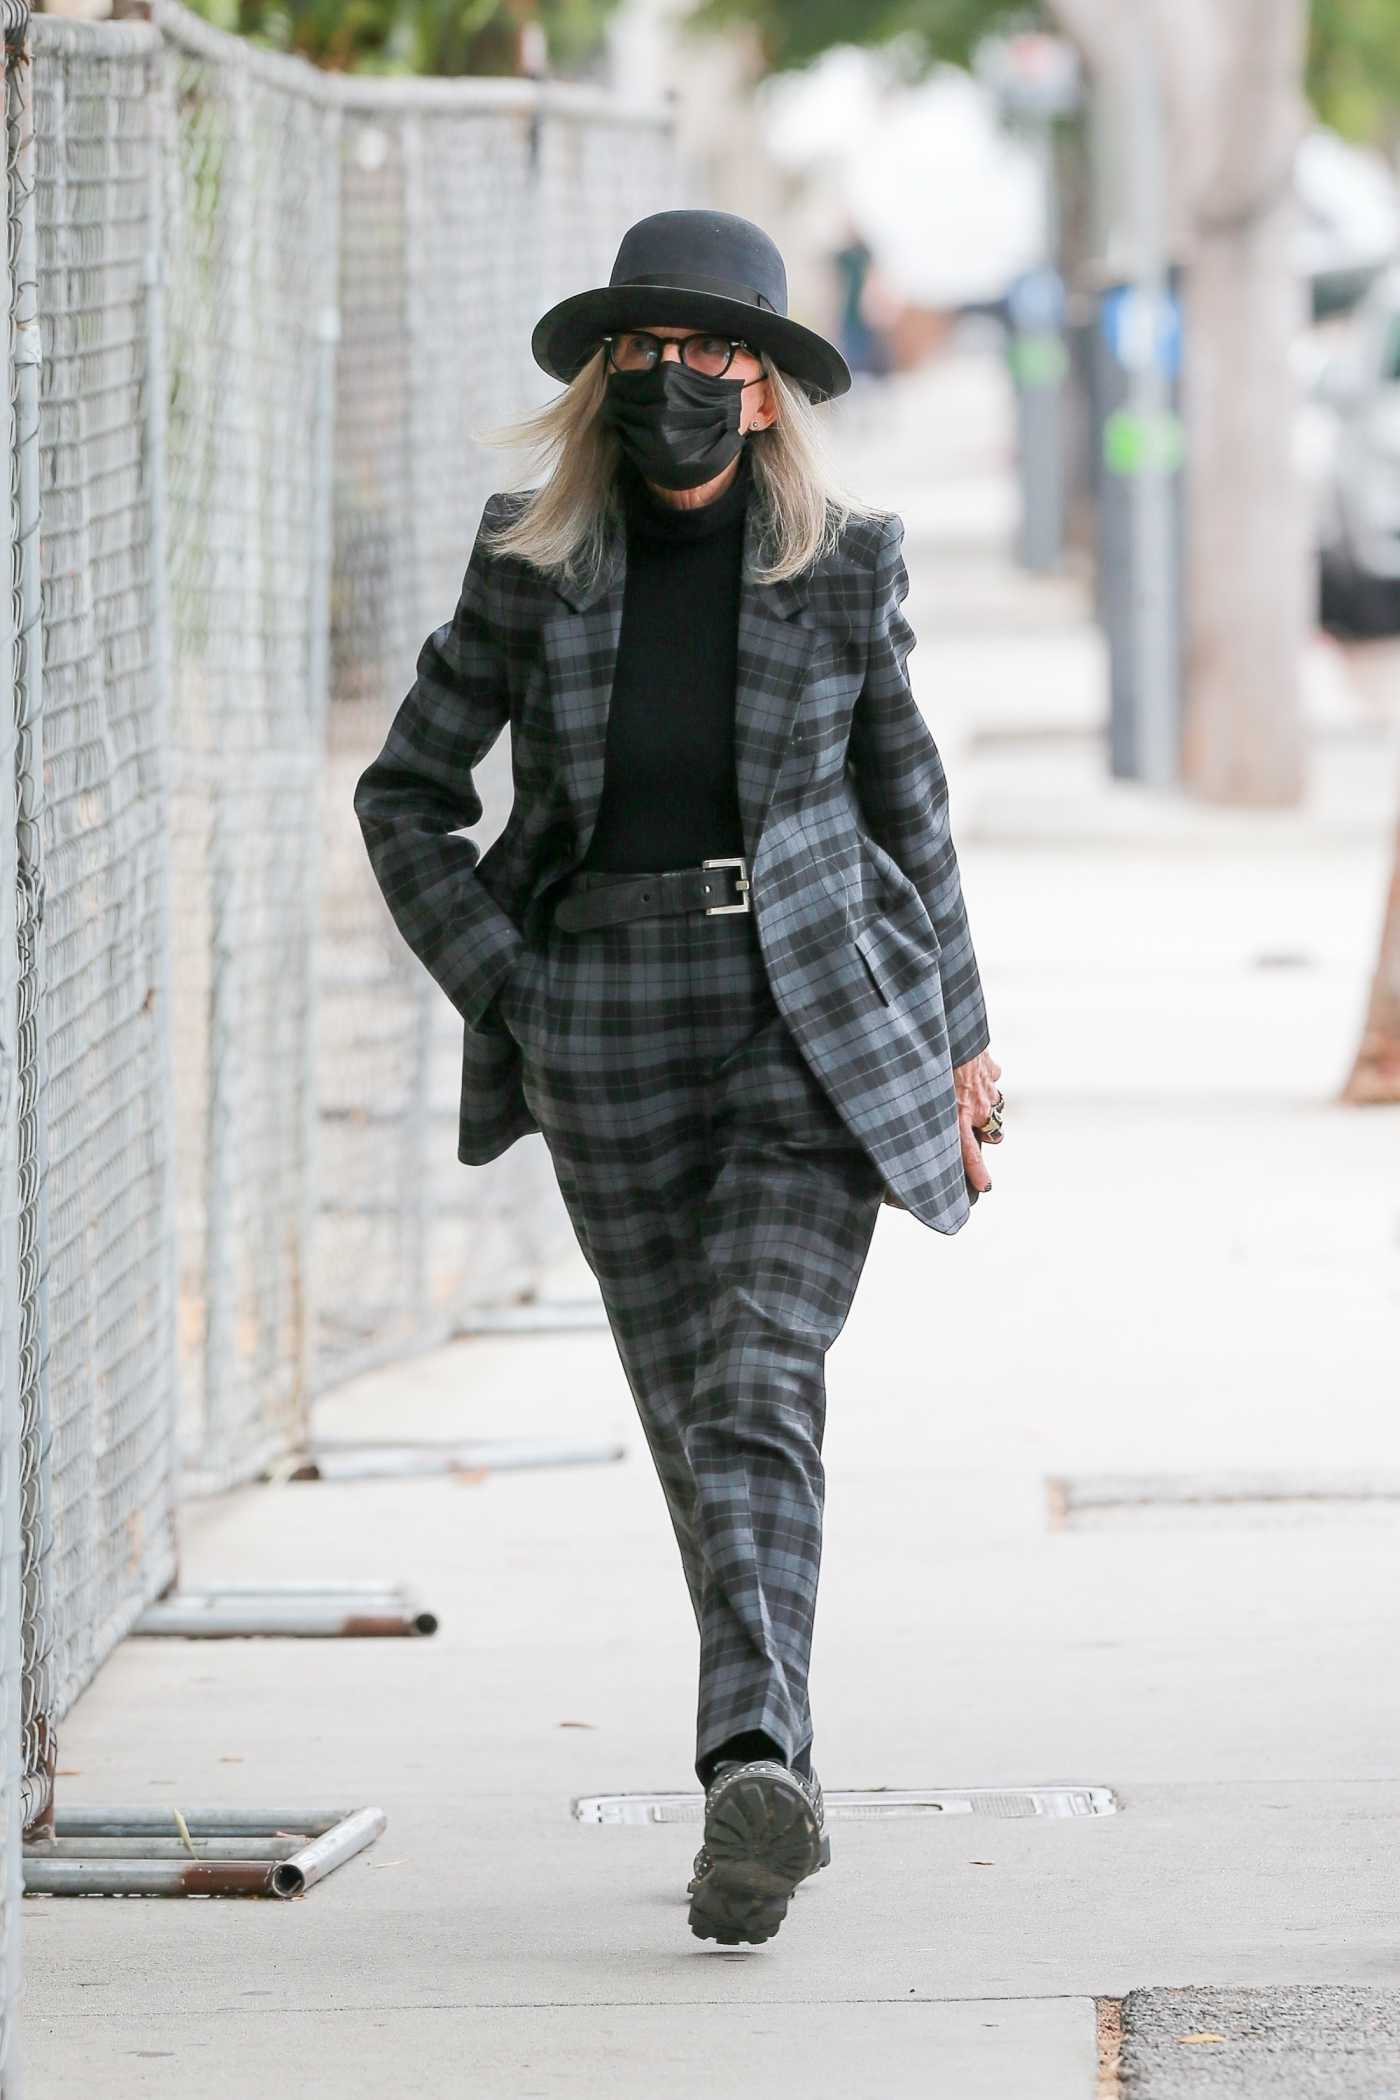 Diane Keaton in a Plaid Suit Goes to Lunch at Westfield Mall in Los Angeles 10/23/2020